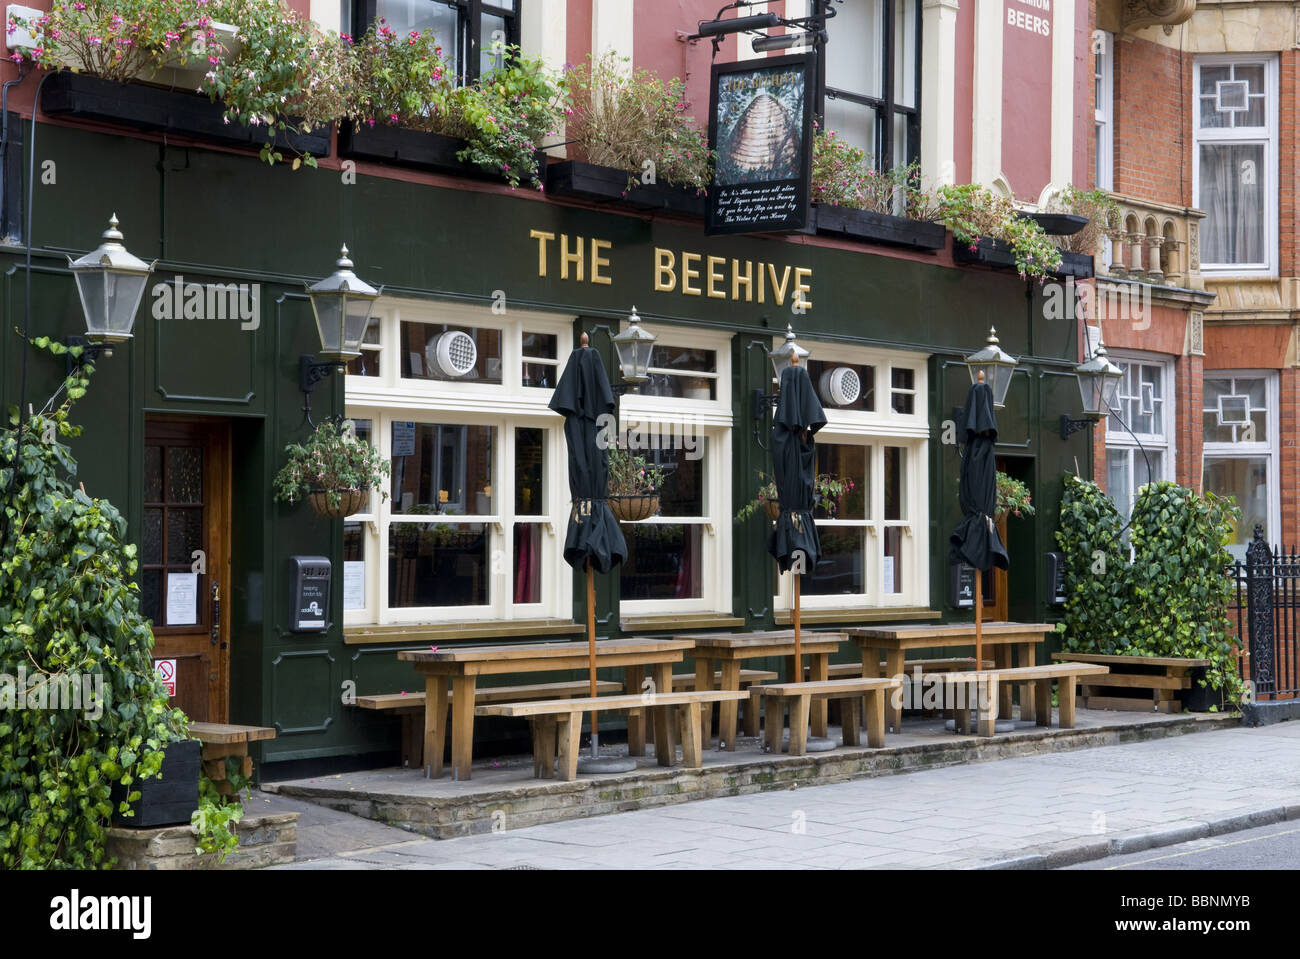 geography / travel, Great Britain, London, Pub 'The Beehive', exterior view, Additional-Rights-Clearance - Stock Image